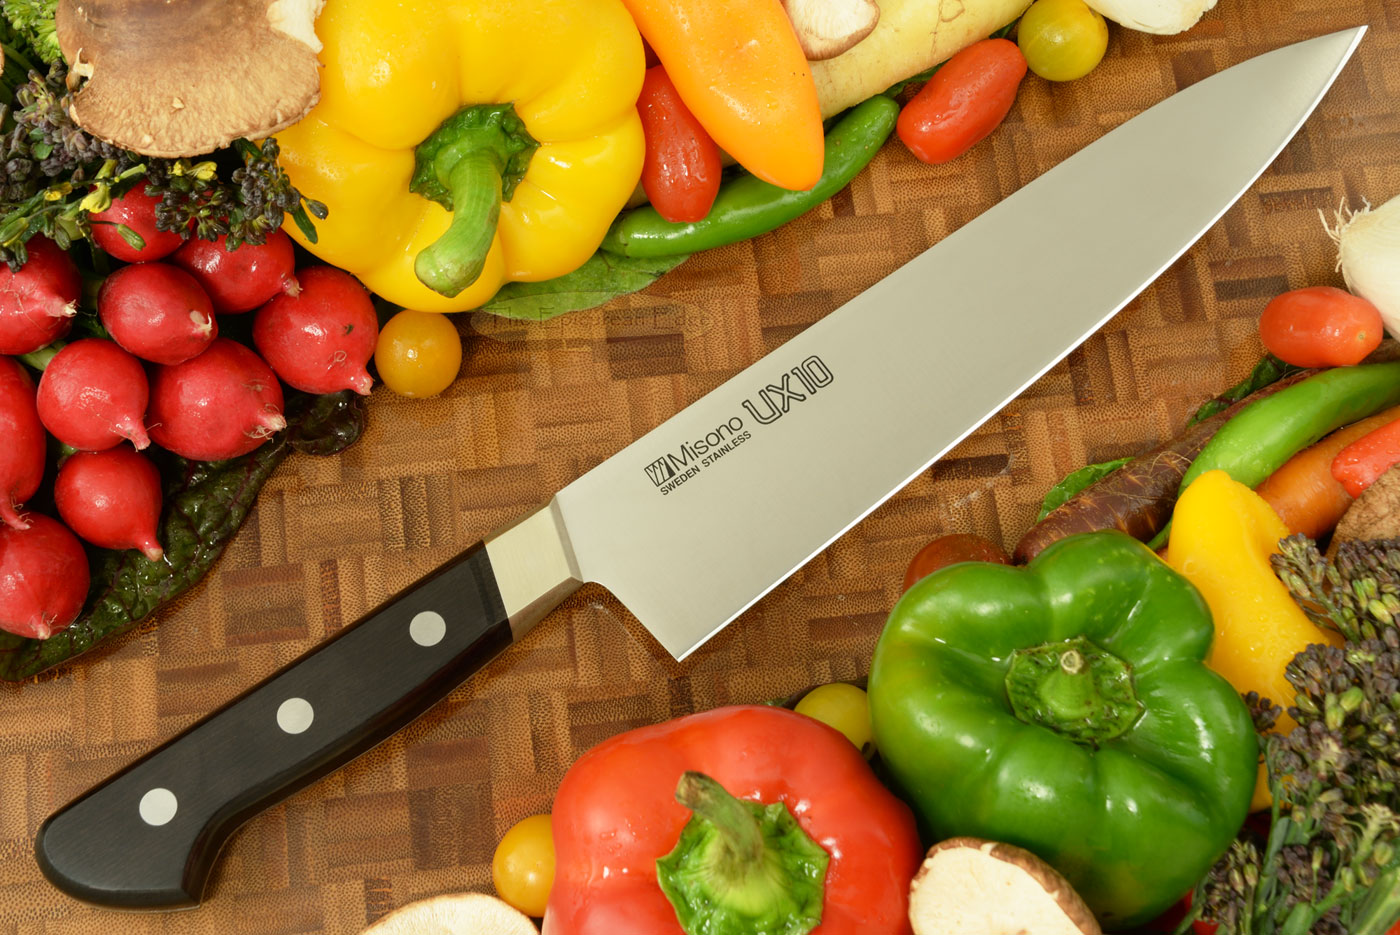 UX10 Chef's Knife - Gyuto - 9 1/2 in. (240mm) No. 713